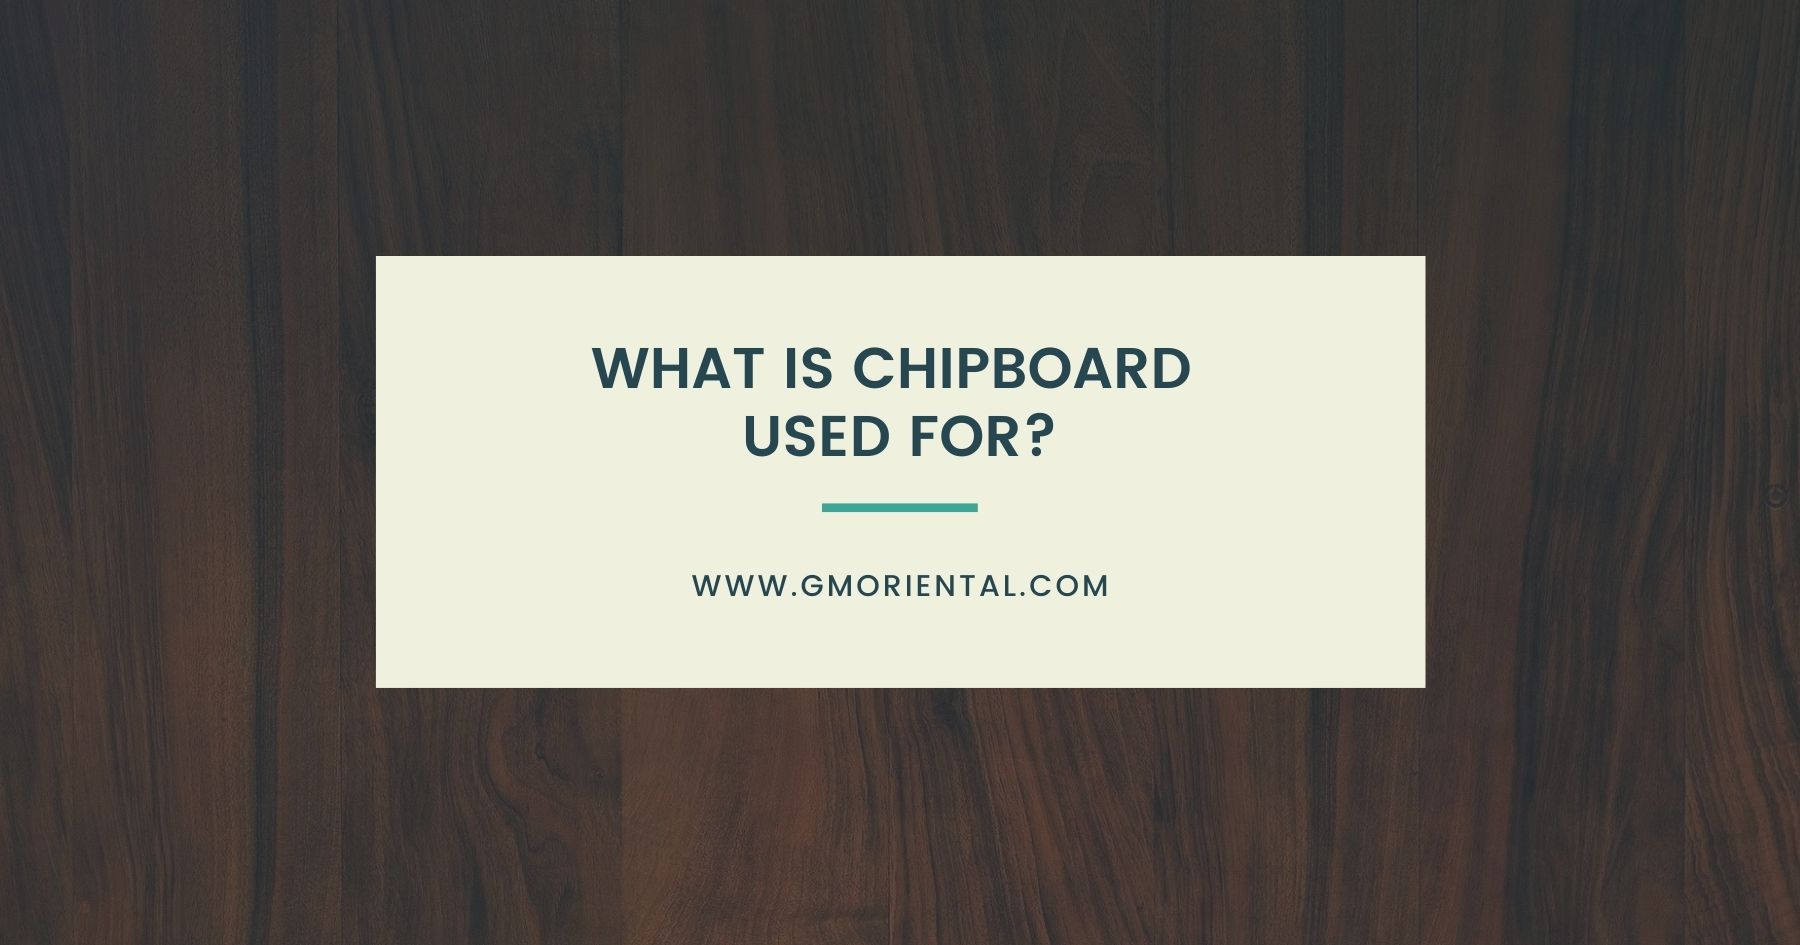 What Is Chipboard Used For?